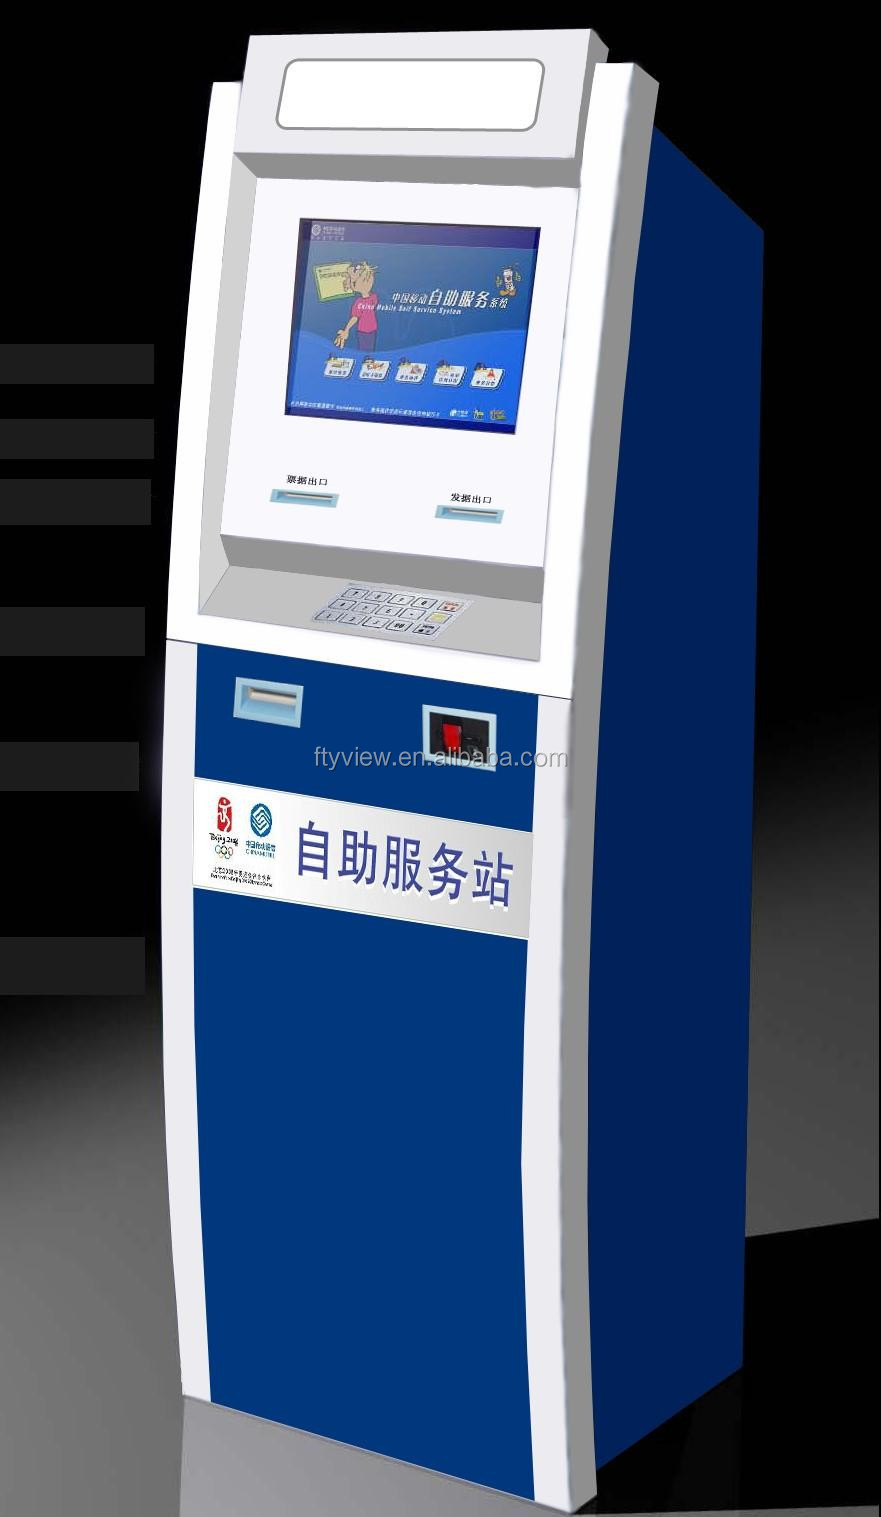 ul 291 atm safe multi-function photo self payment machine kiosk